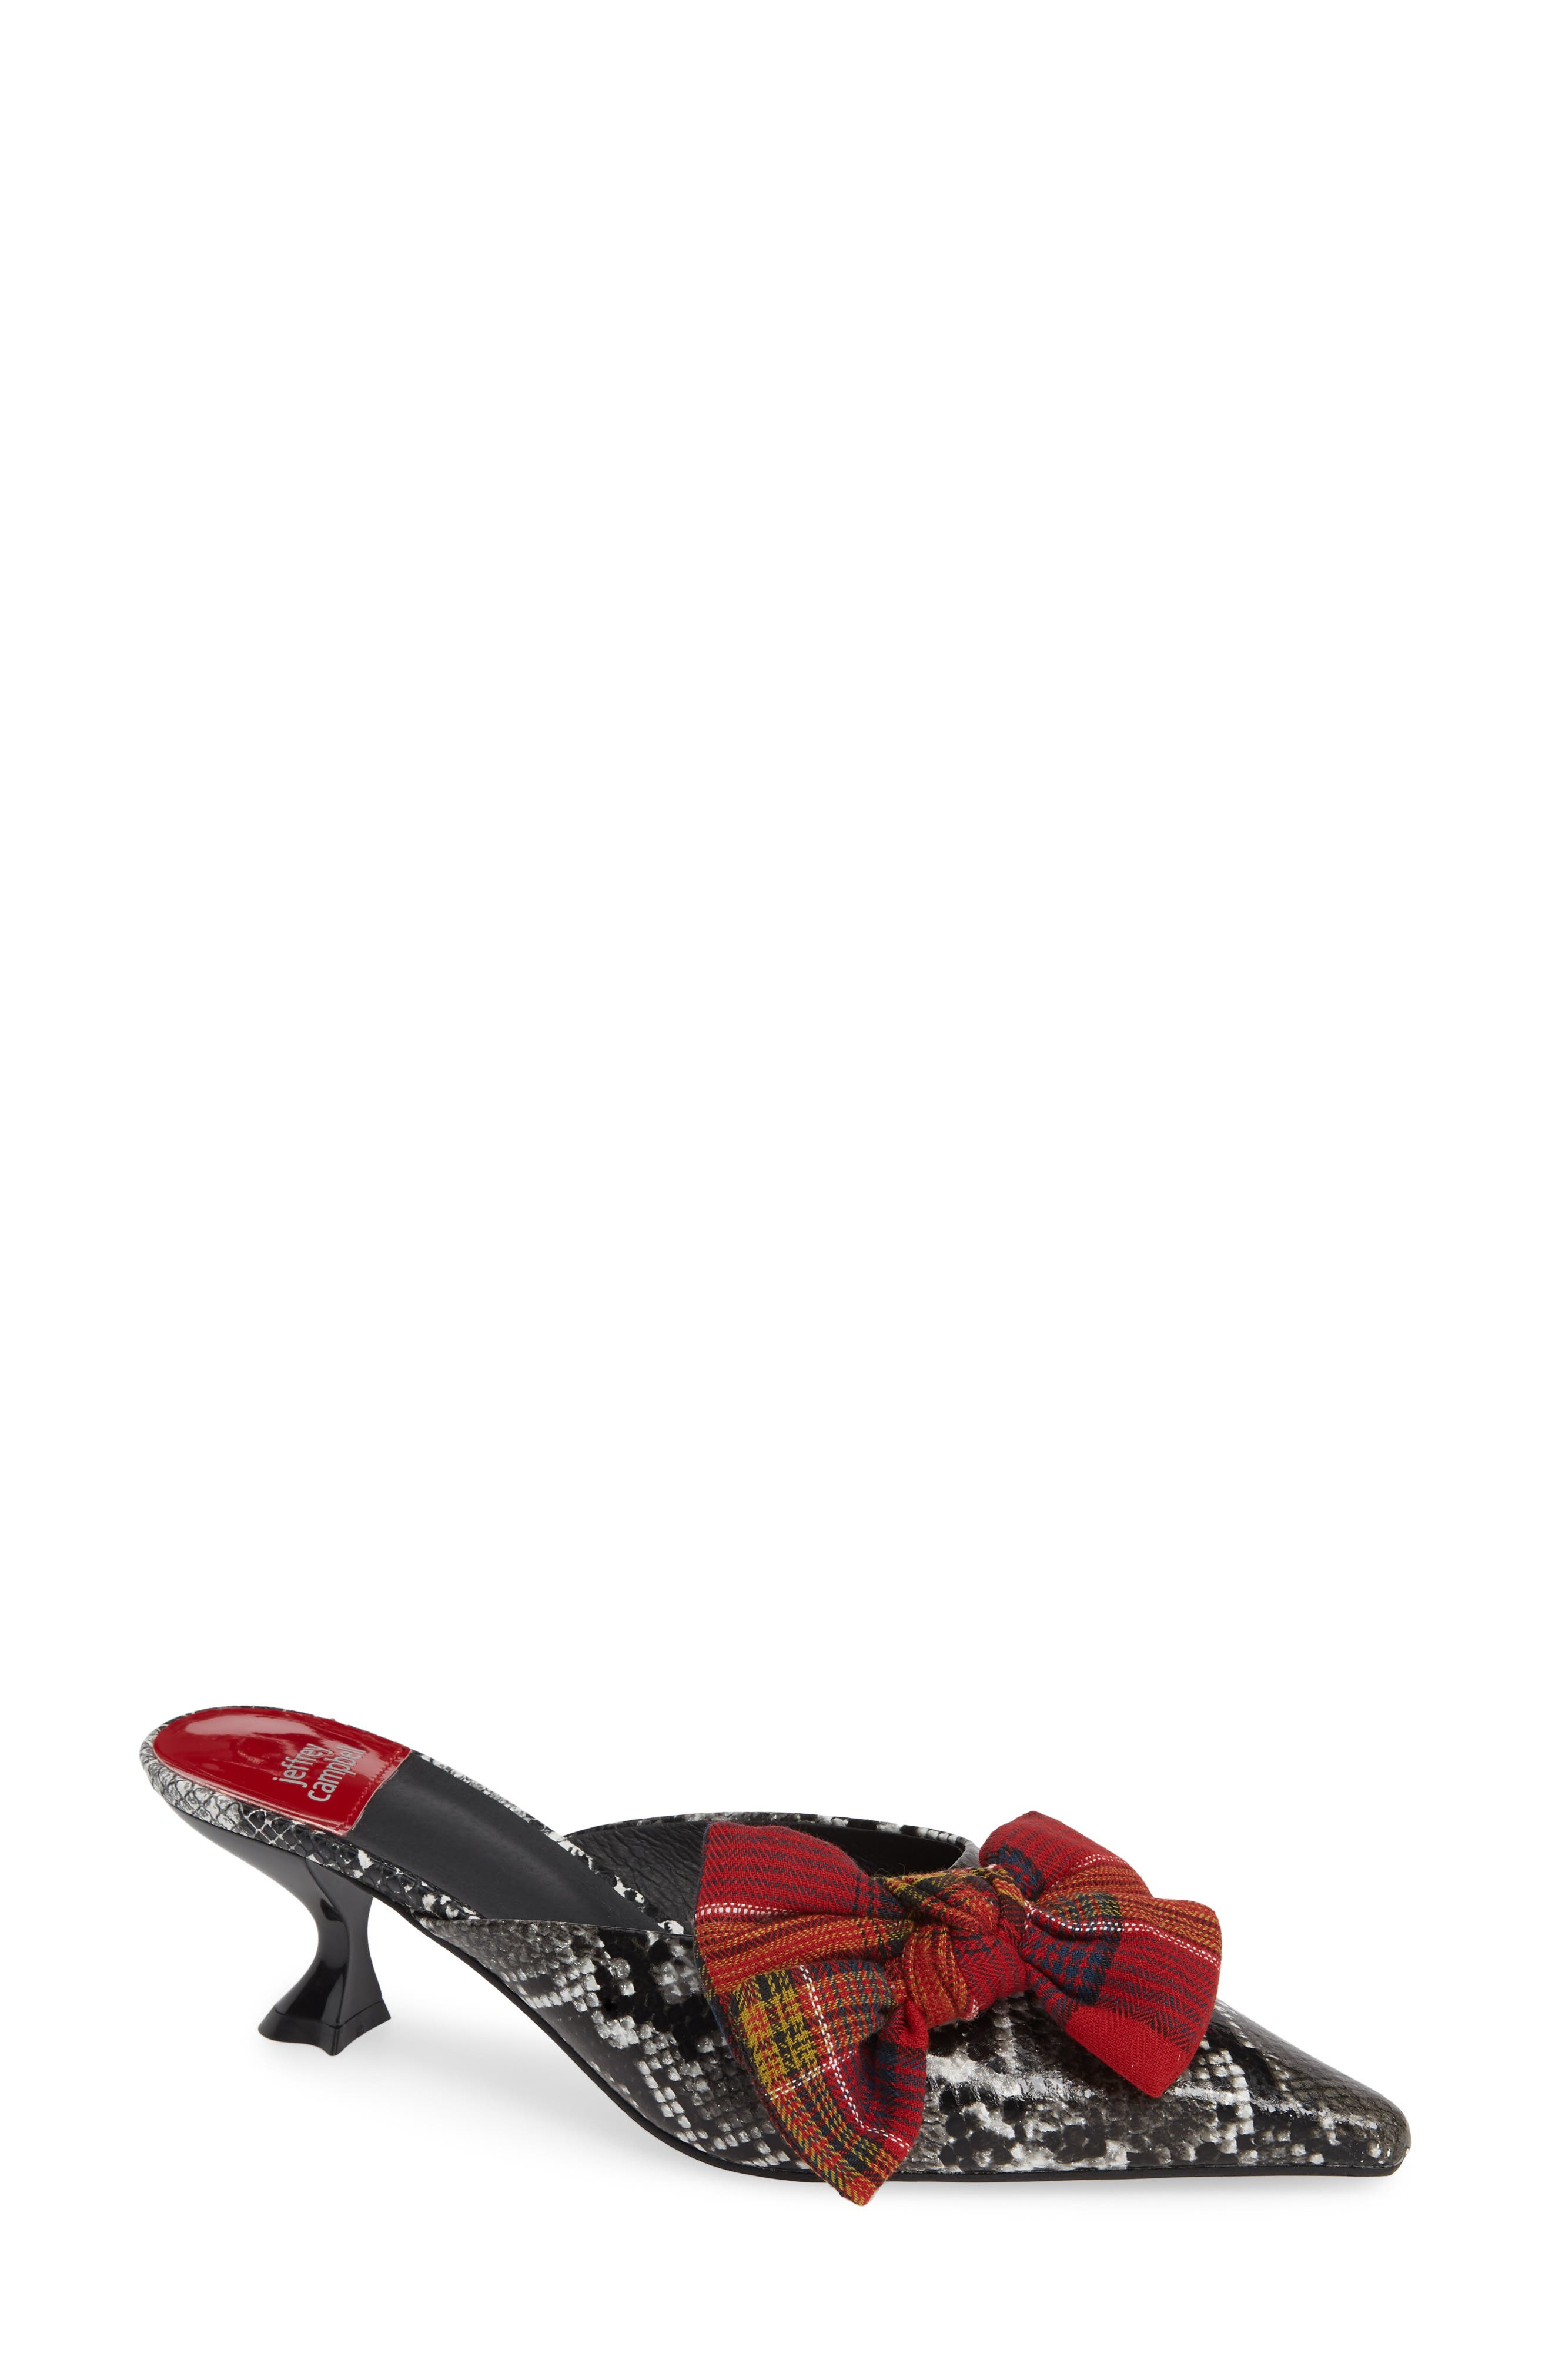 JEFFREY CAMPBELL, Adorn Pointy Toe Mule, Main thumbnail 1, color, GREY BLACK SNAKE / RED PLAID